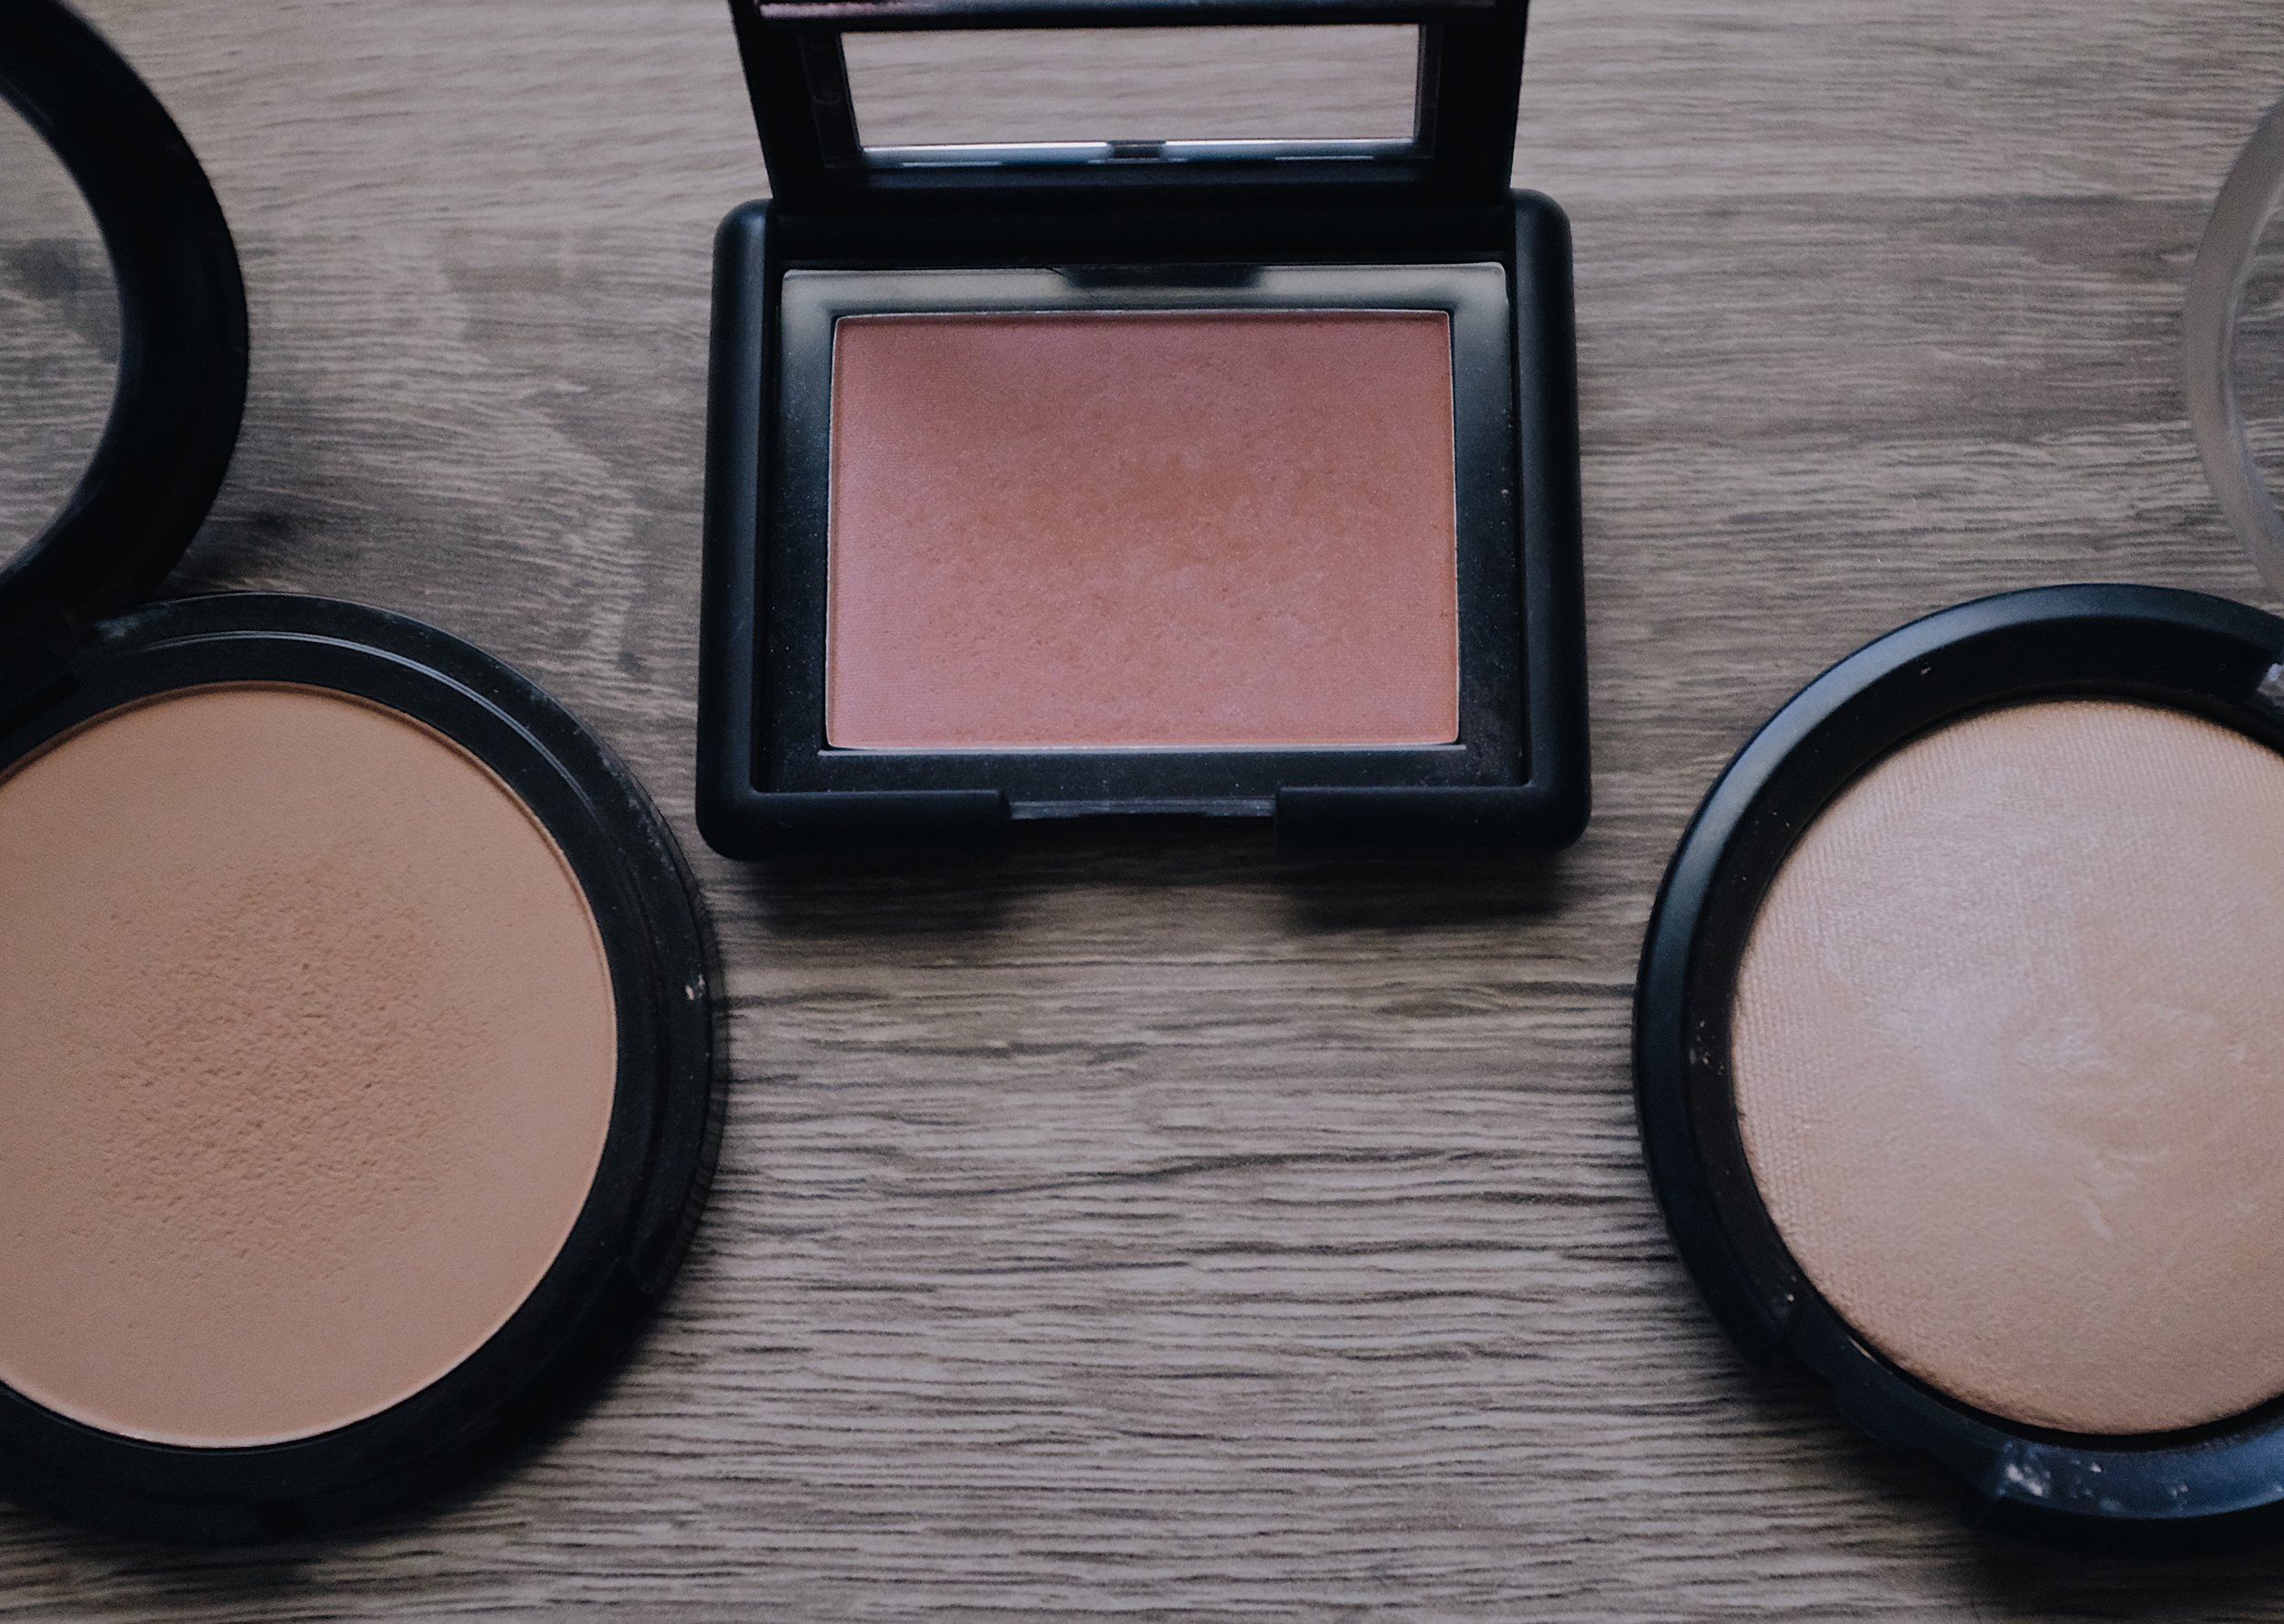 """Face Powders  (from left to right)   ELF 'Primer-Infused Bronzer' in Forever Sunkissed- $6  (for bronzer & crease color on the lid)   - My newest favorite bronzer! This bronzer has no shimmer and has the perfect amount of warmth for my skin tone without making me look muddy or orange.    ELF Blush in Mellow Mauve- $3    -This blush gives that nice """"flushed"""" look with a slight iridescent sheen to it, so it's not flat. Don't worry, it's not glittery or shiny and doesn't clash with highlighter.    Essence 'Pure Nude' Highlighter in Be My Highlight- $4.49    - This highlighter is perfect for the subtle """"lit within"""" glow. It doesn't exaggerate texture on the cheeks either, so it's becomes one with the skin."""